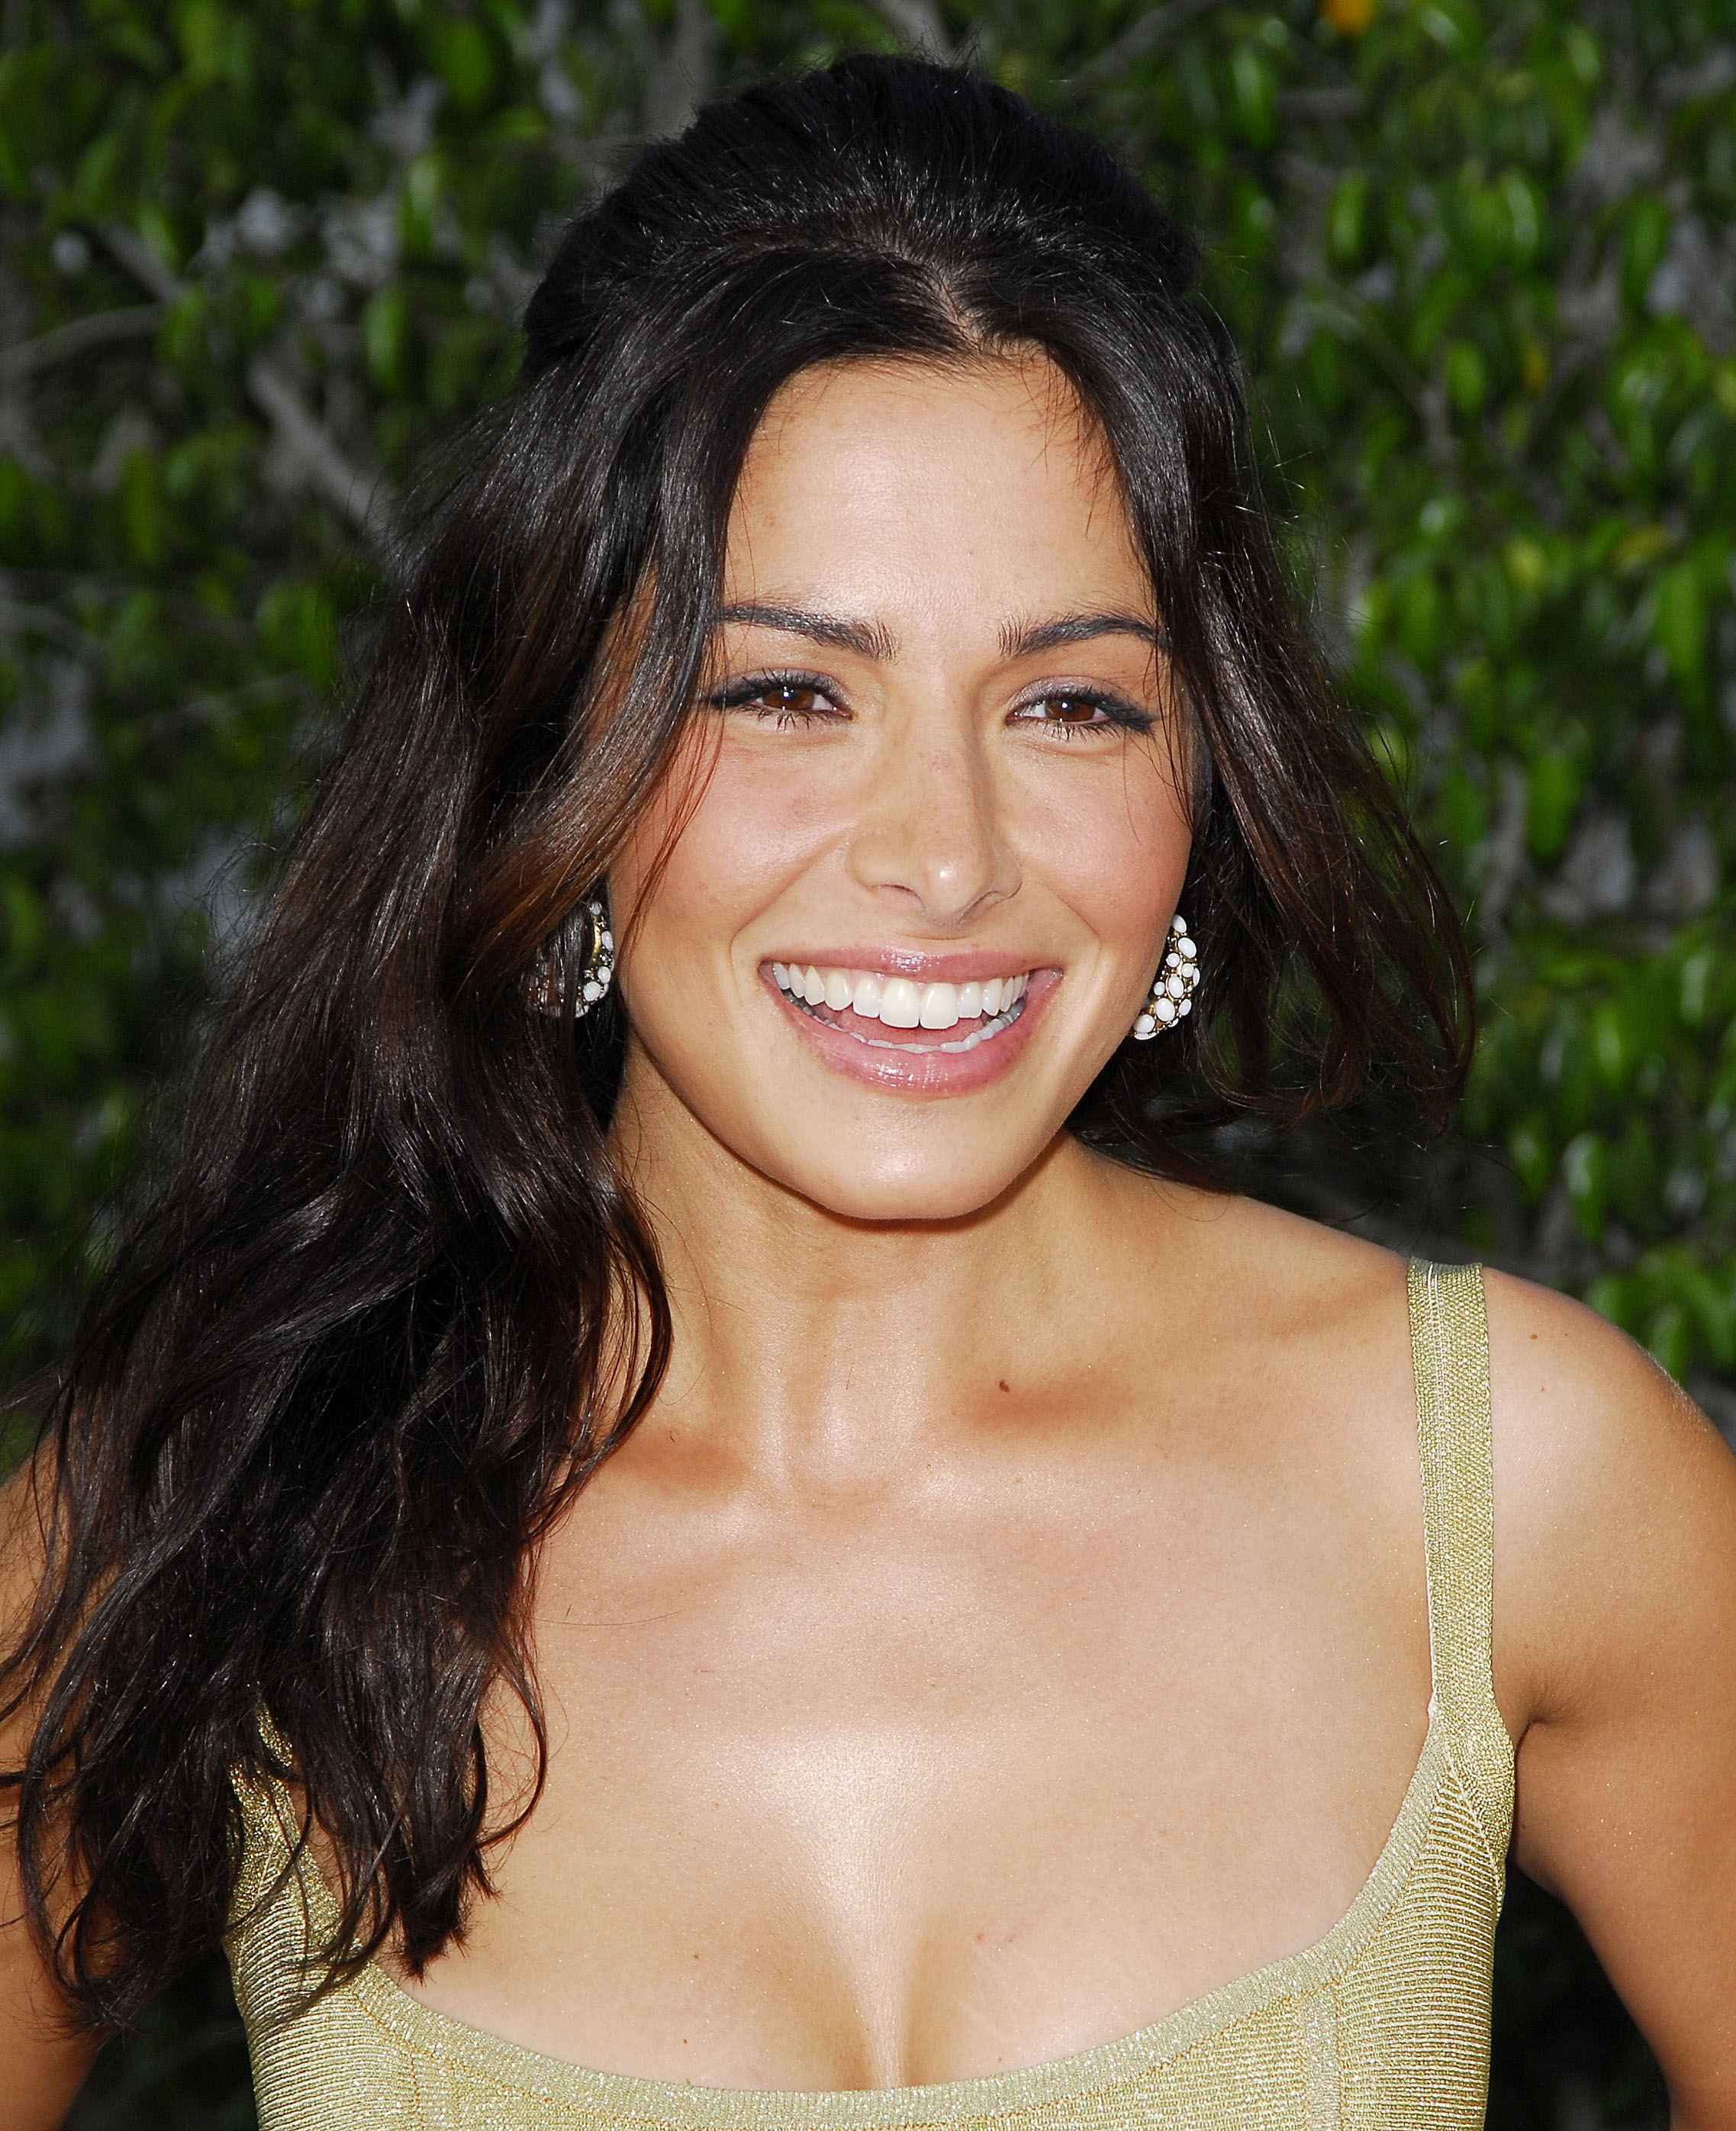 Sarah shahi photo gallery CelebsHookers - Celebs Pussy, New Naked Leaked